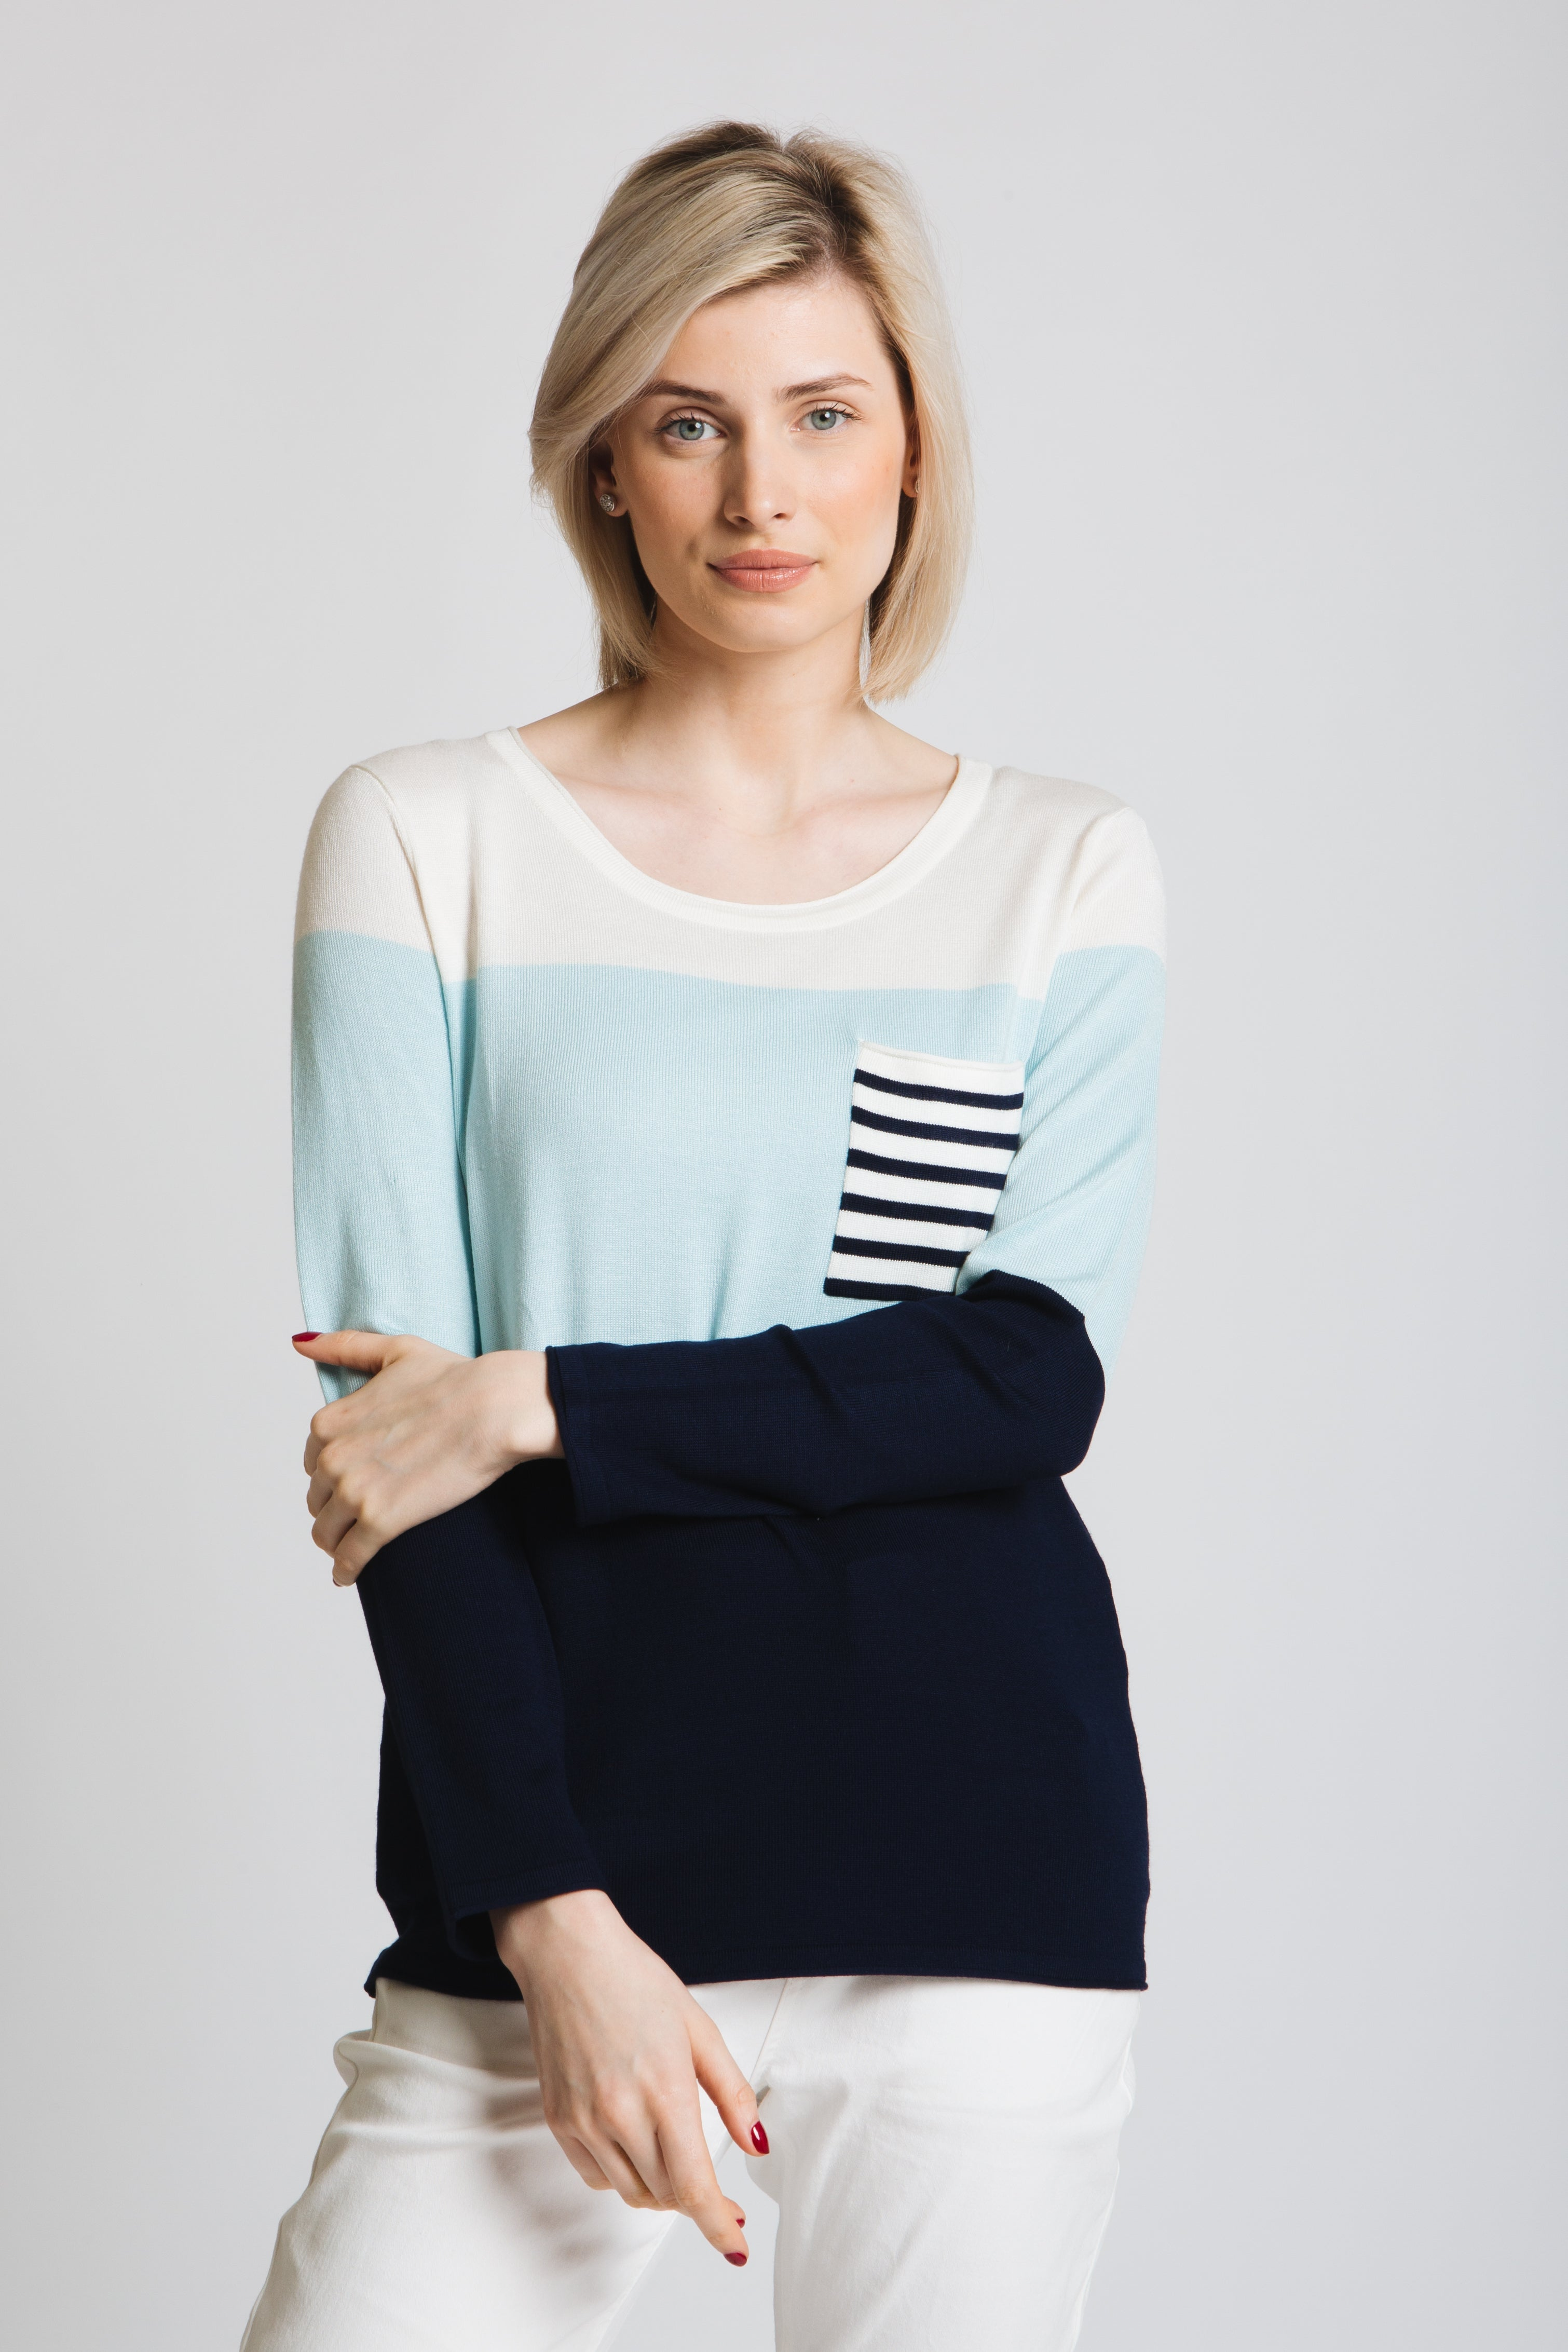 Colour block sweater with mini stripe patch pocket. Scoop neck, log sleeve, classic fit